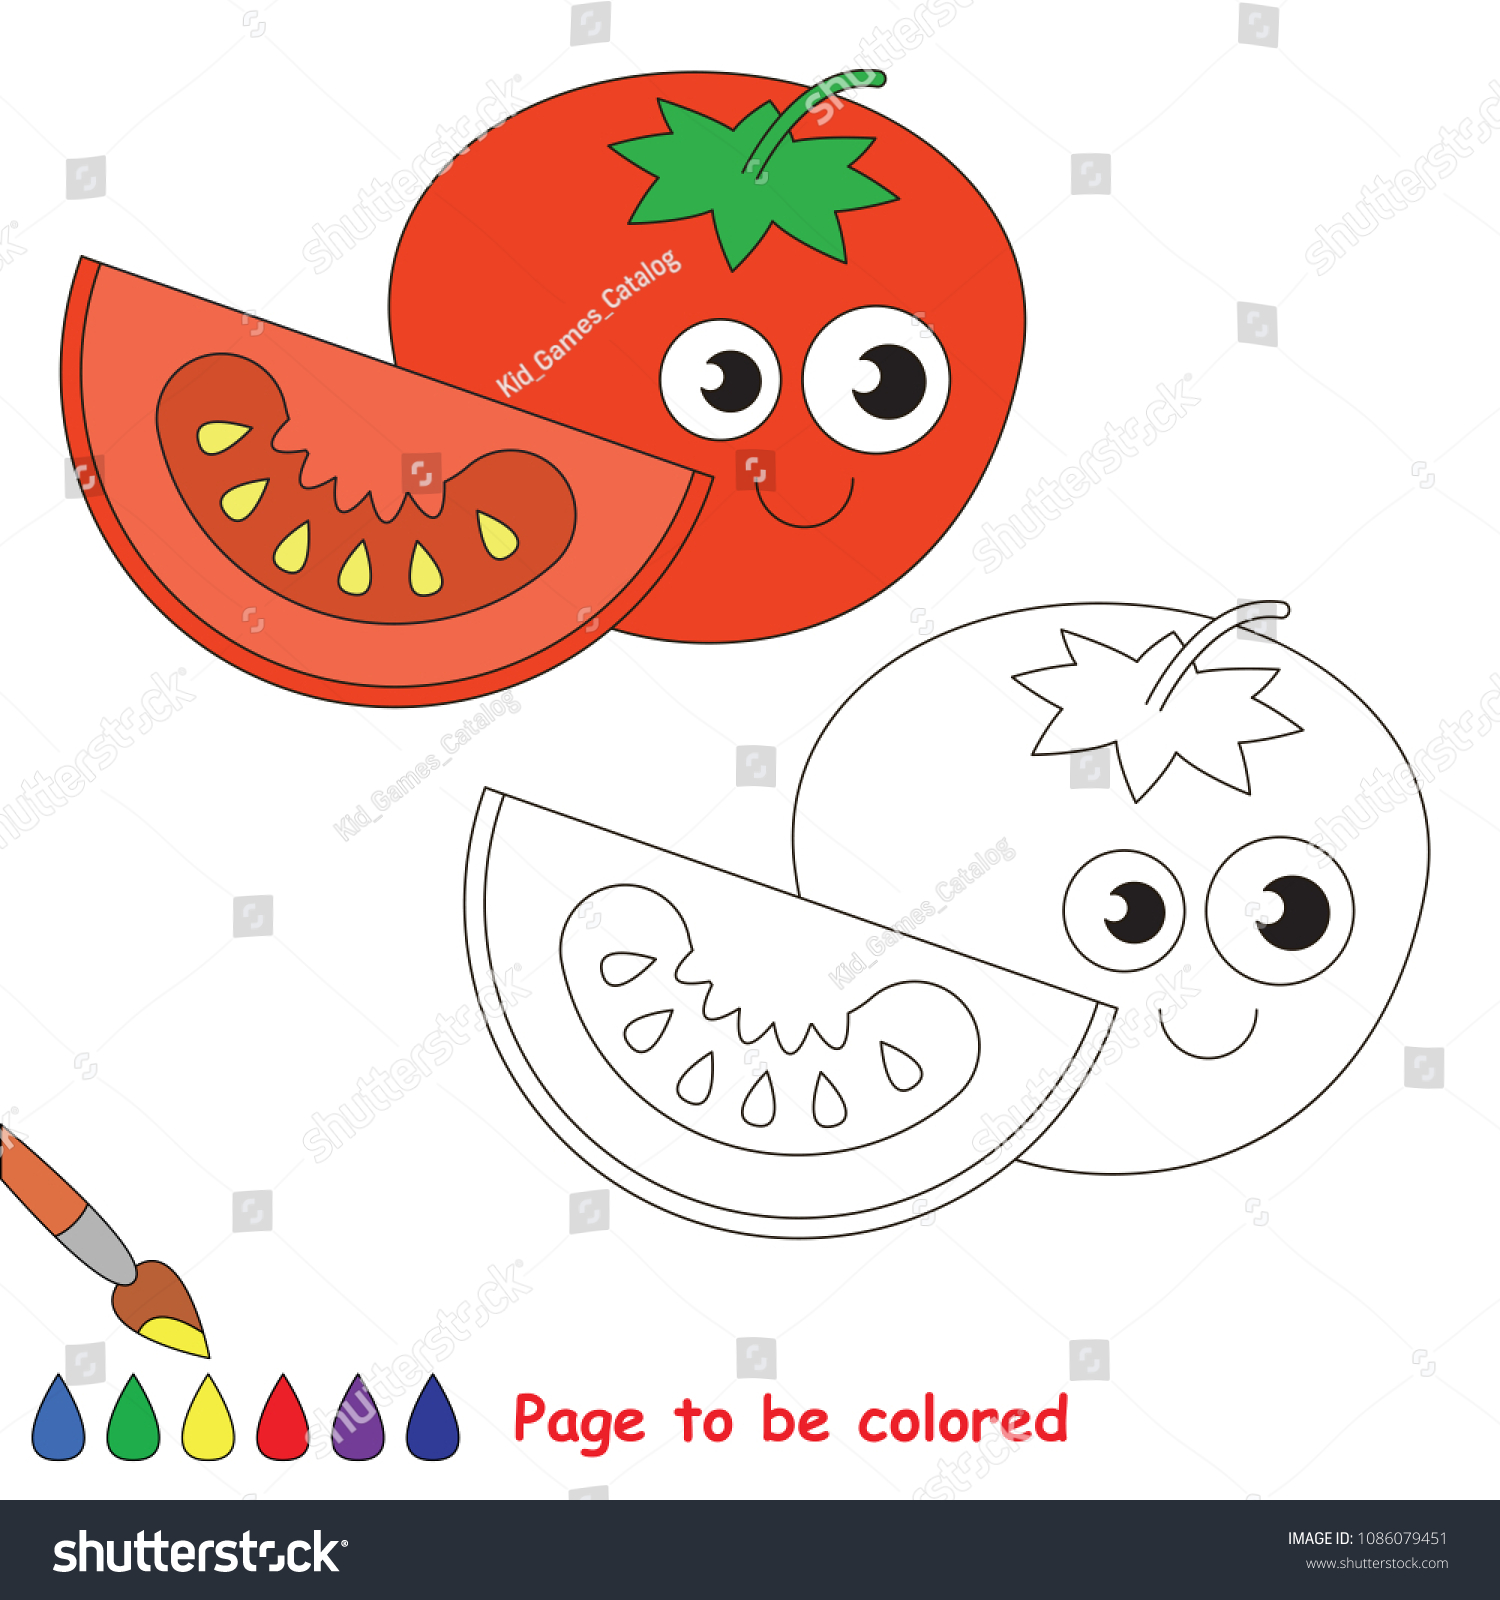 Funny Tomato Be Colored Coloring Book Stock Vector Royalty Free 1086079451 Dope tomato gaming | www.twitch.tv/dopetomatogaming www.mixer.com/dopetomatogaming www.twitter.com/dopetomato www.facebook.com/dopetomato. shutterstock